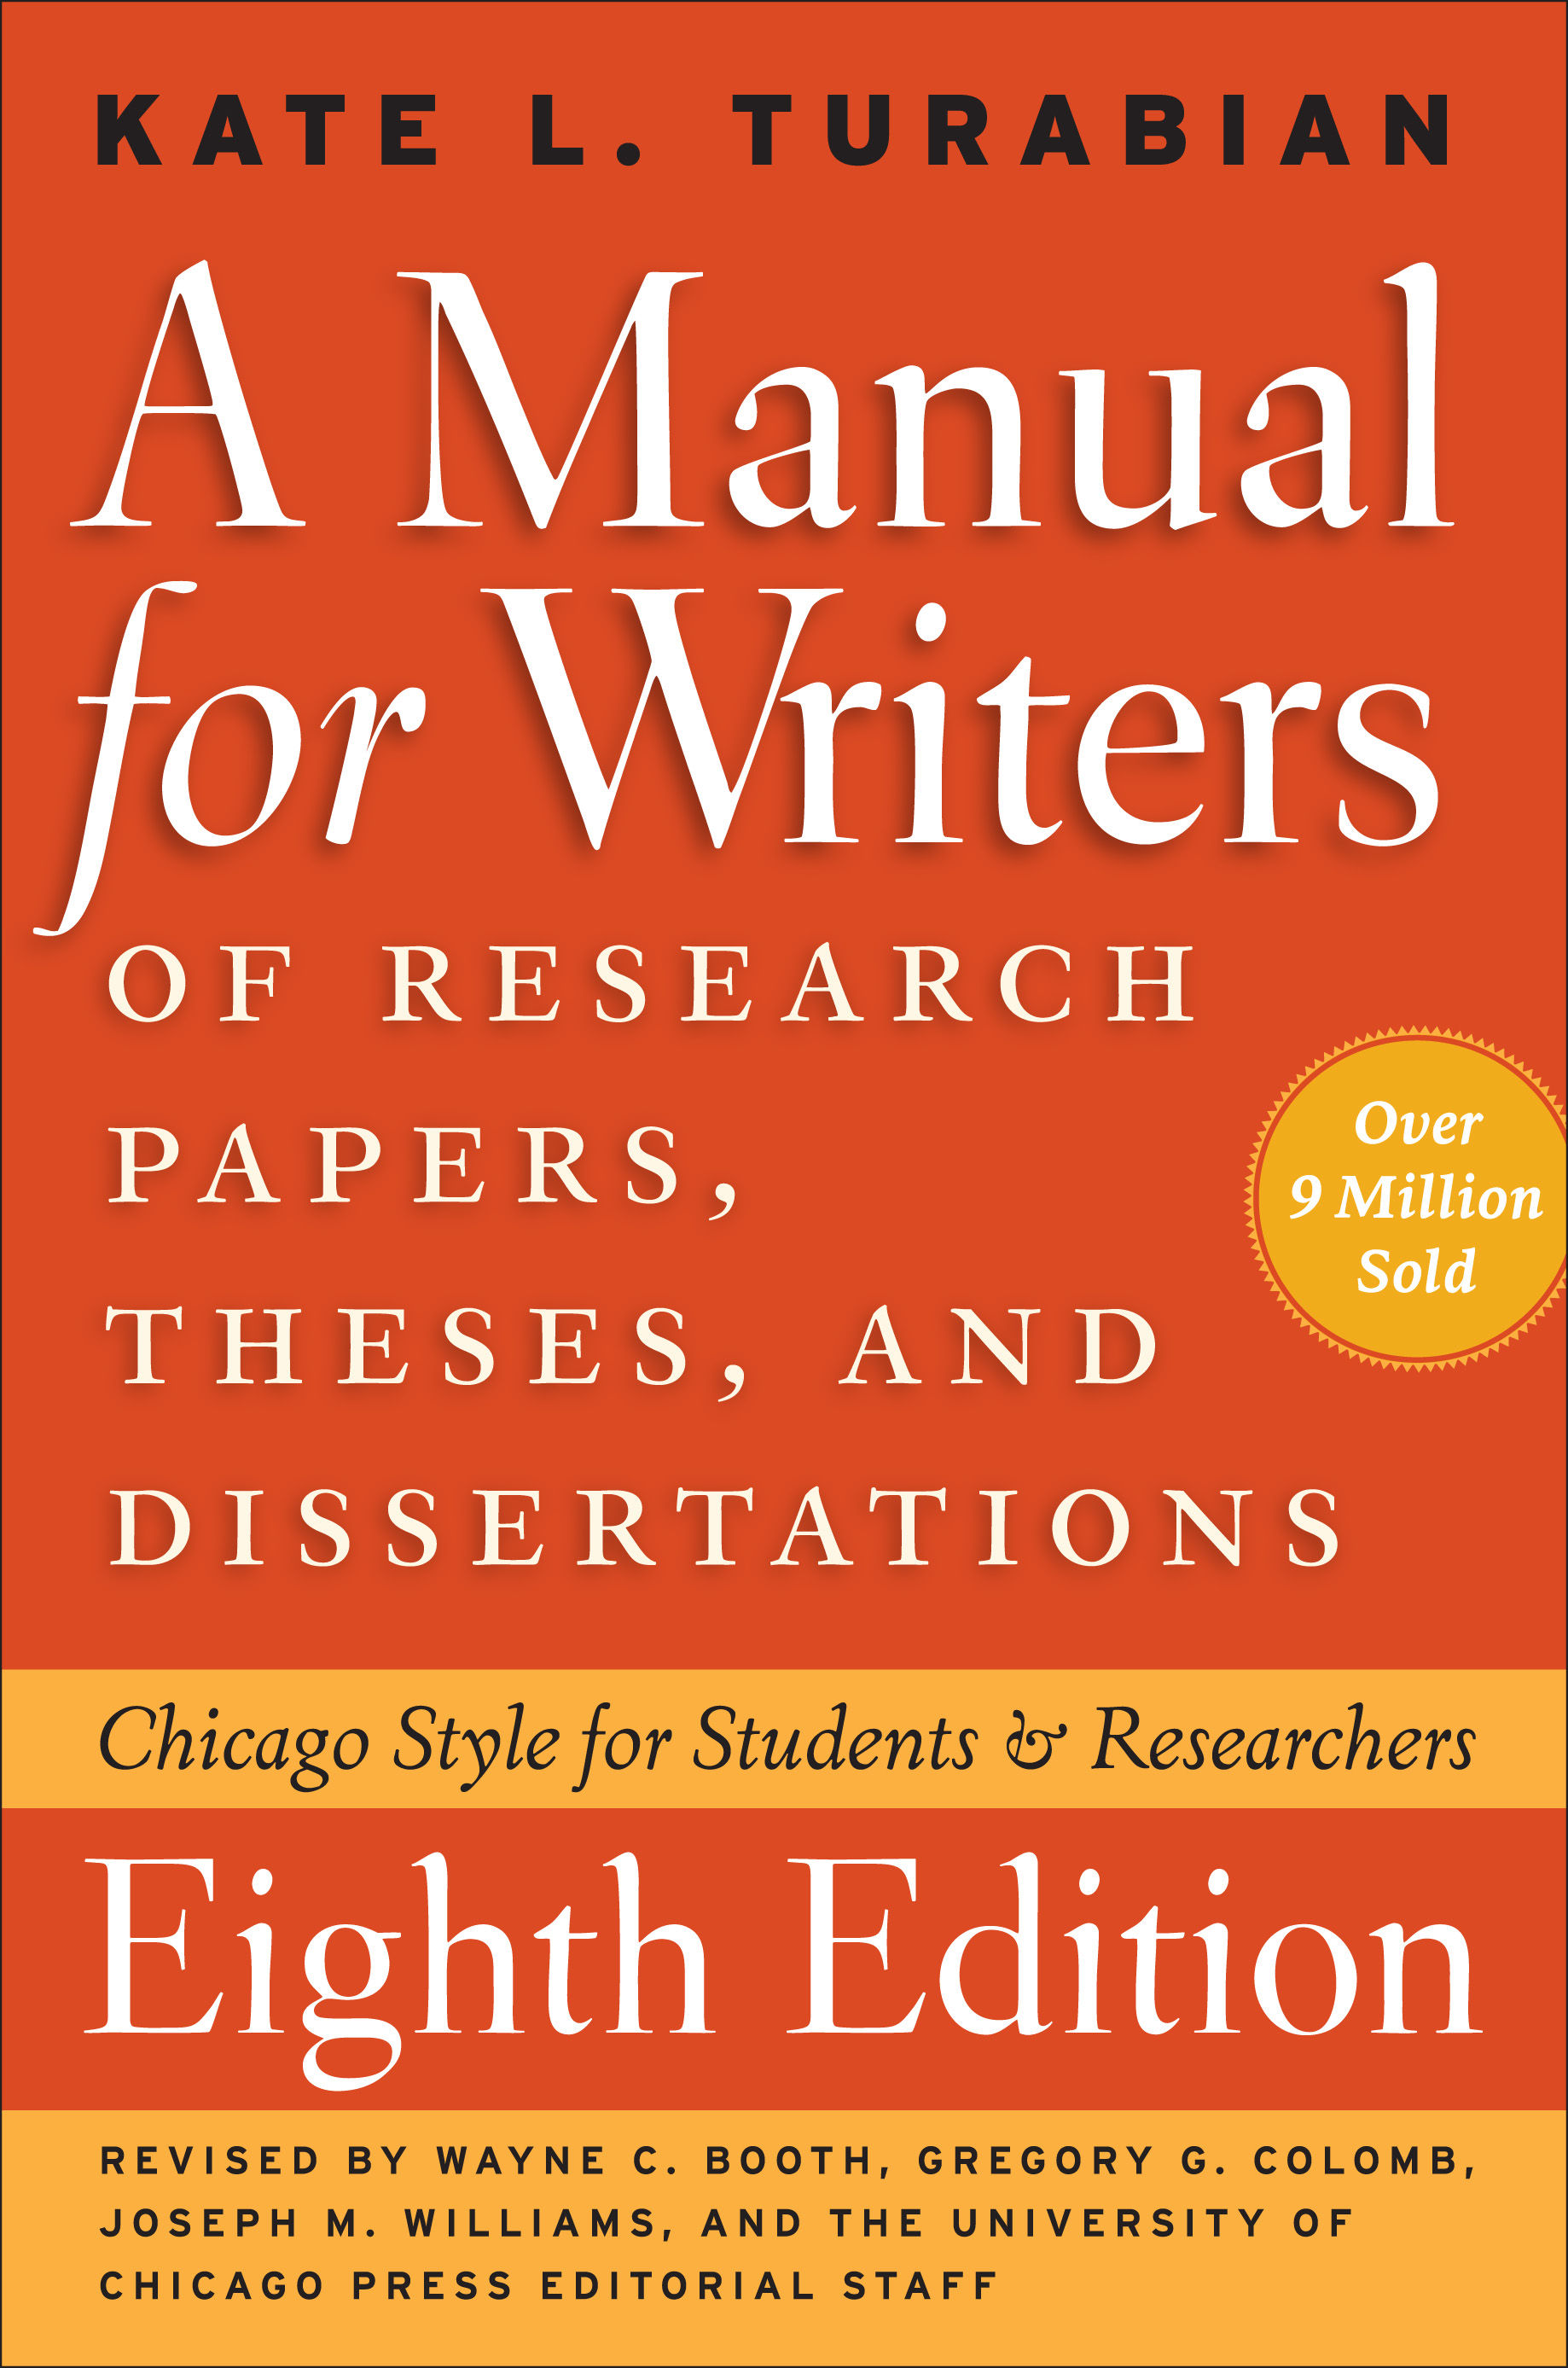 003 Manual For Writers Of Researchs Theses And Dissertations Eighth Edition Uc X Phenomenal A Research Papers Pdf Full